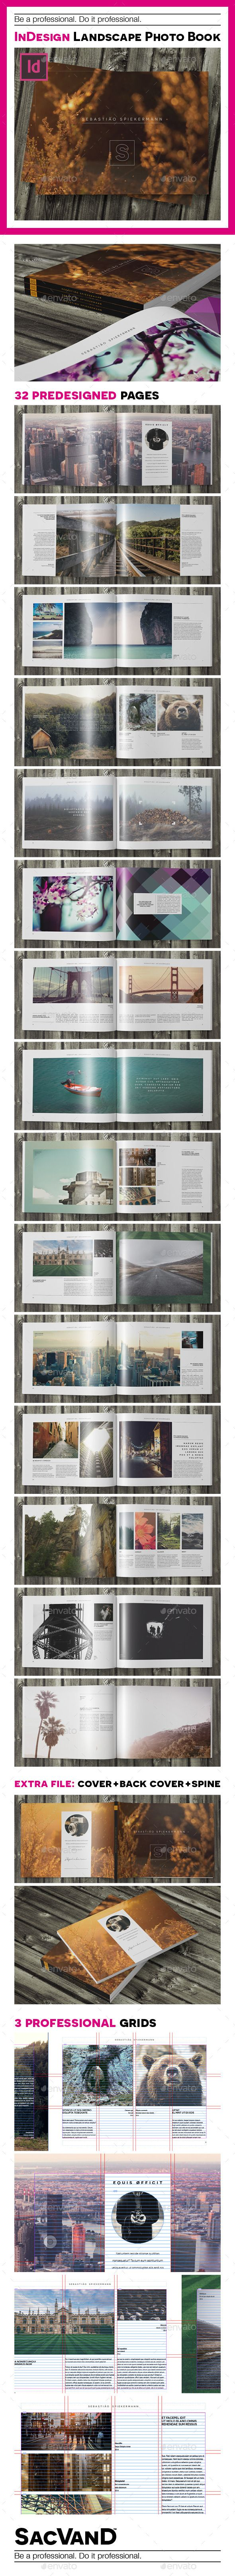 Indesign landscape photo book template | Photo album printing, Print ...